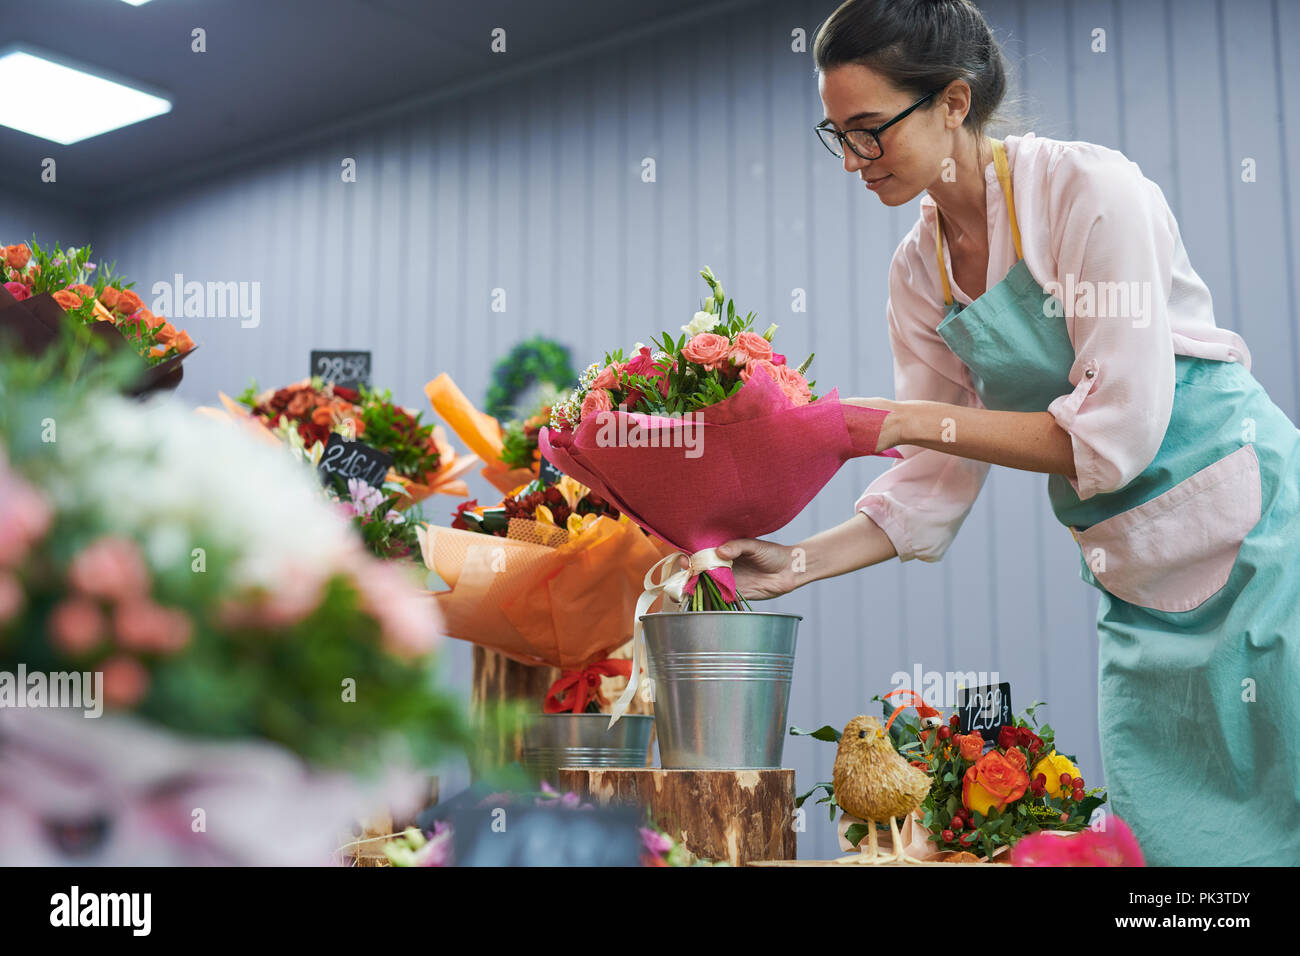 Florist Working in Shop - Stock Image